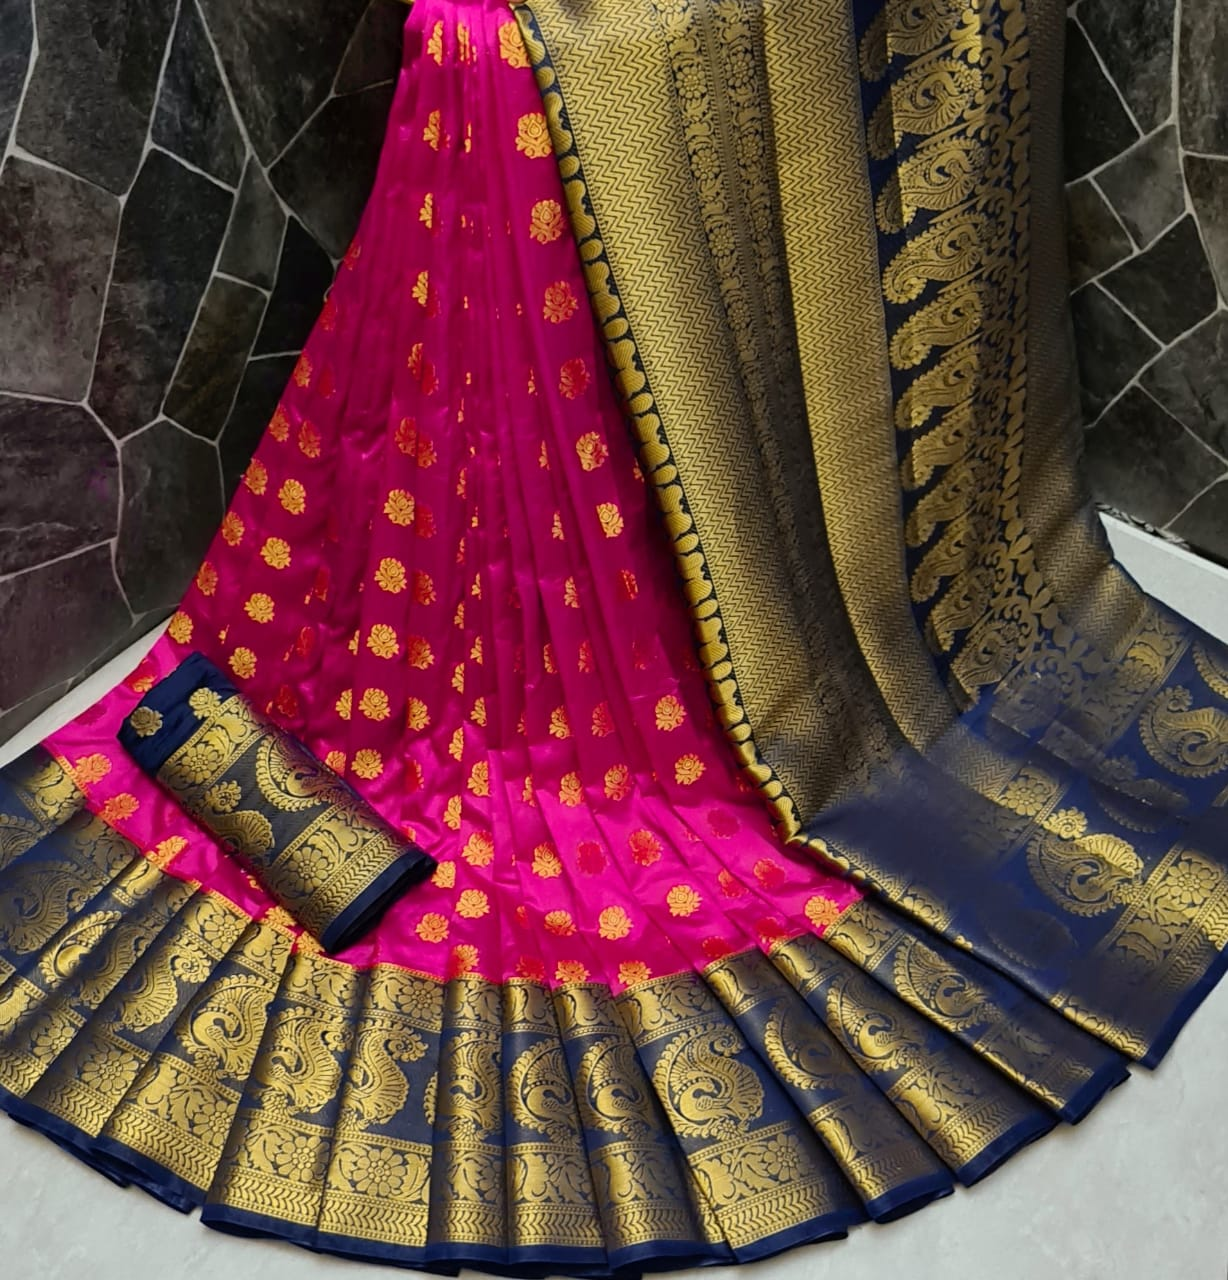 Magnificent Rani Pink Color Wedding Wear Silk Nylon Dying Material Grand Pallu Saree Blouse for Women